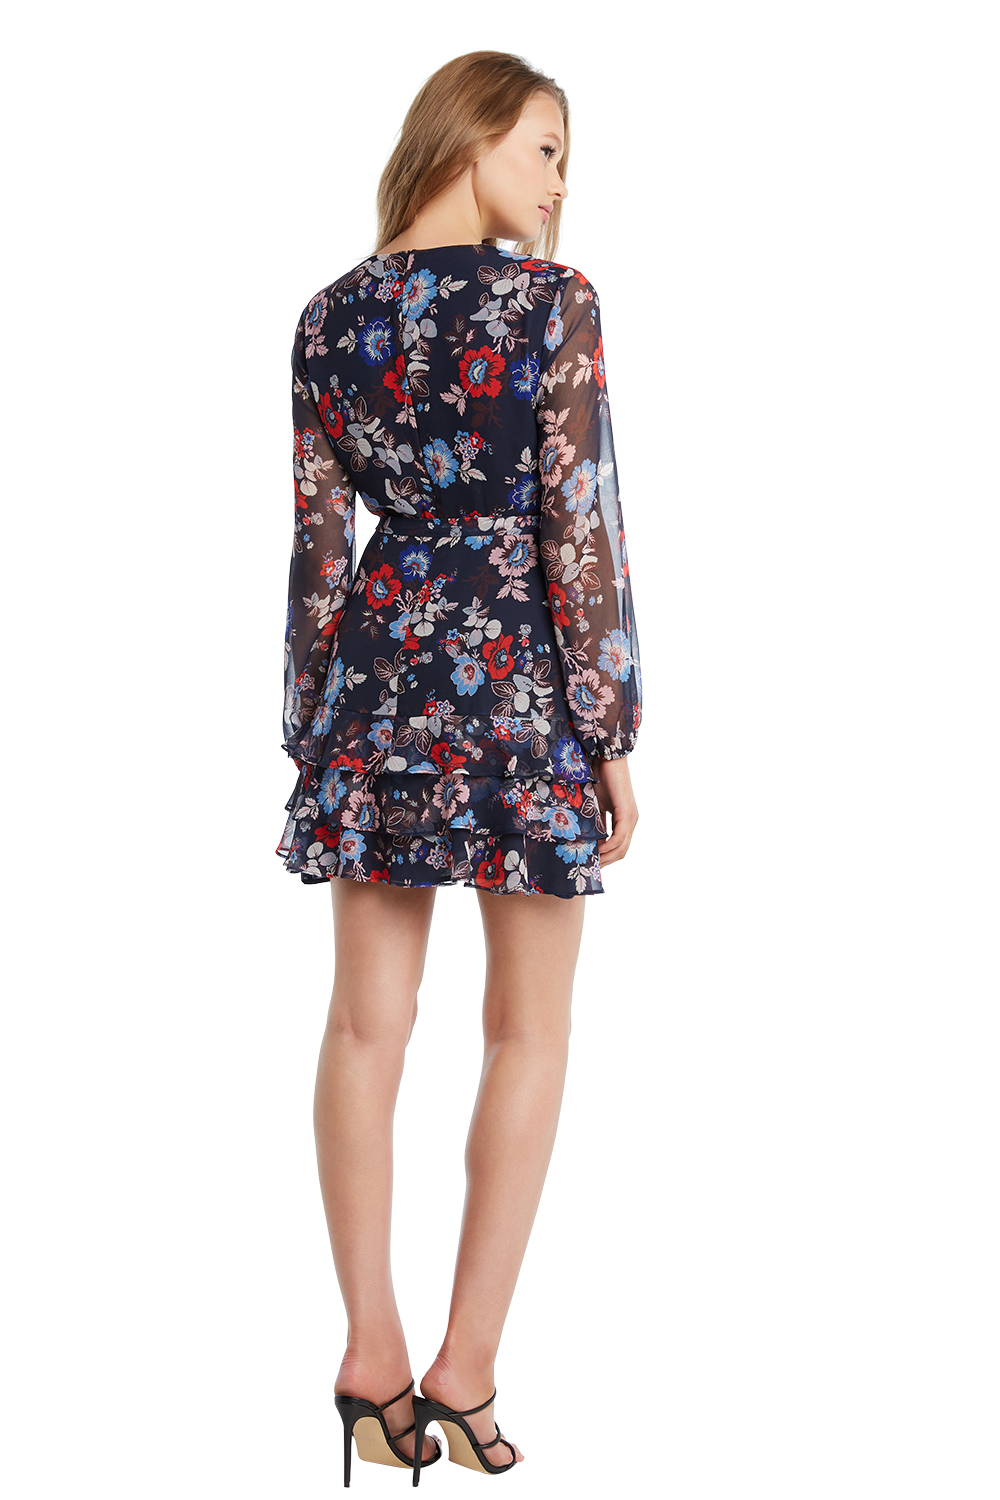 FRILL FLORAL DRESS in colour AMPARO BLUE